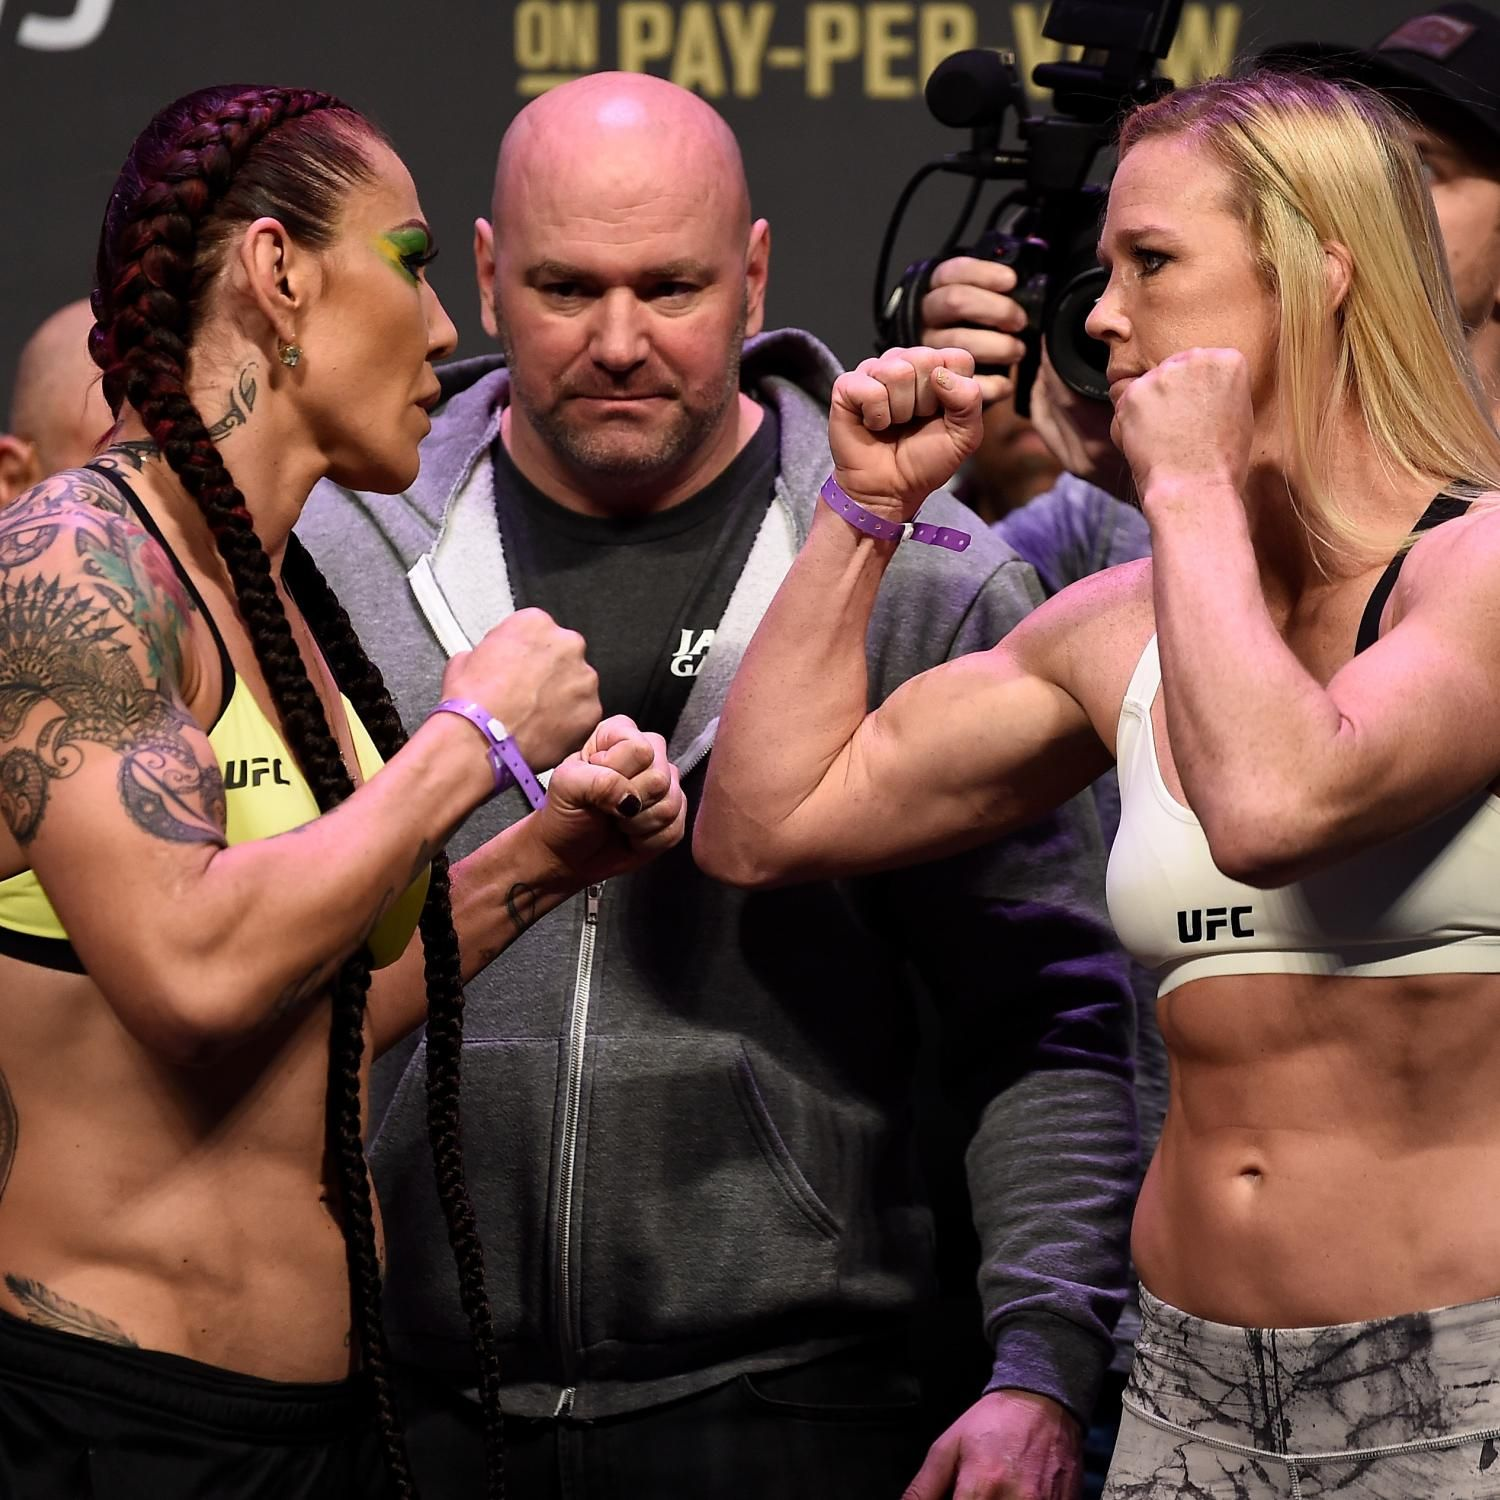 UFC 219 Fight Card PPV Schedule, Odds and Predictions for